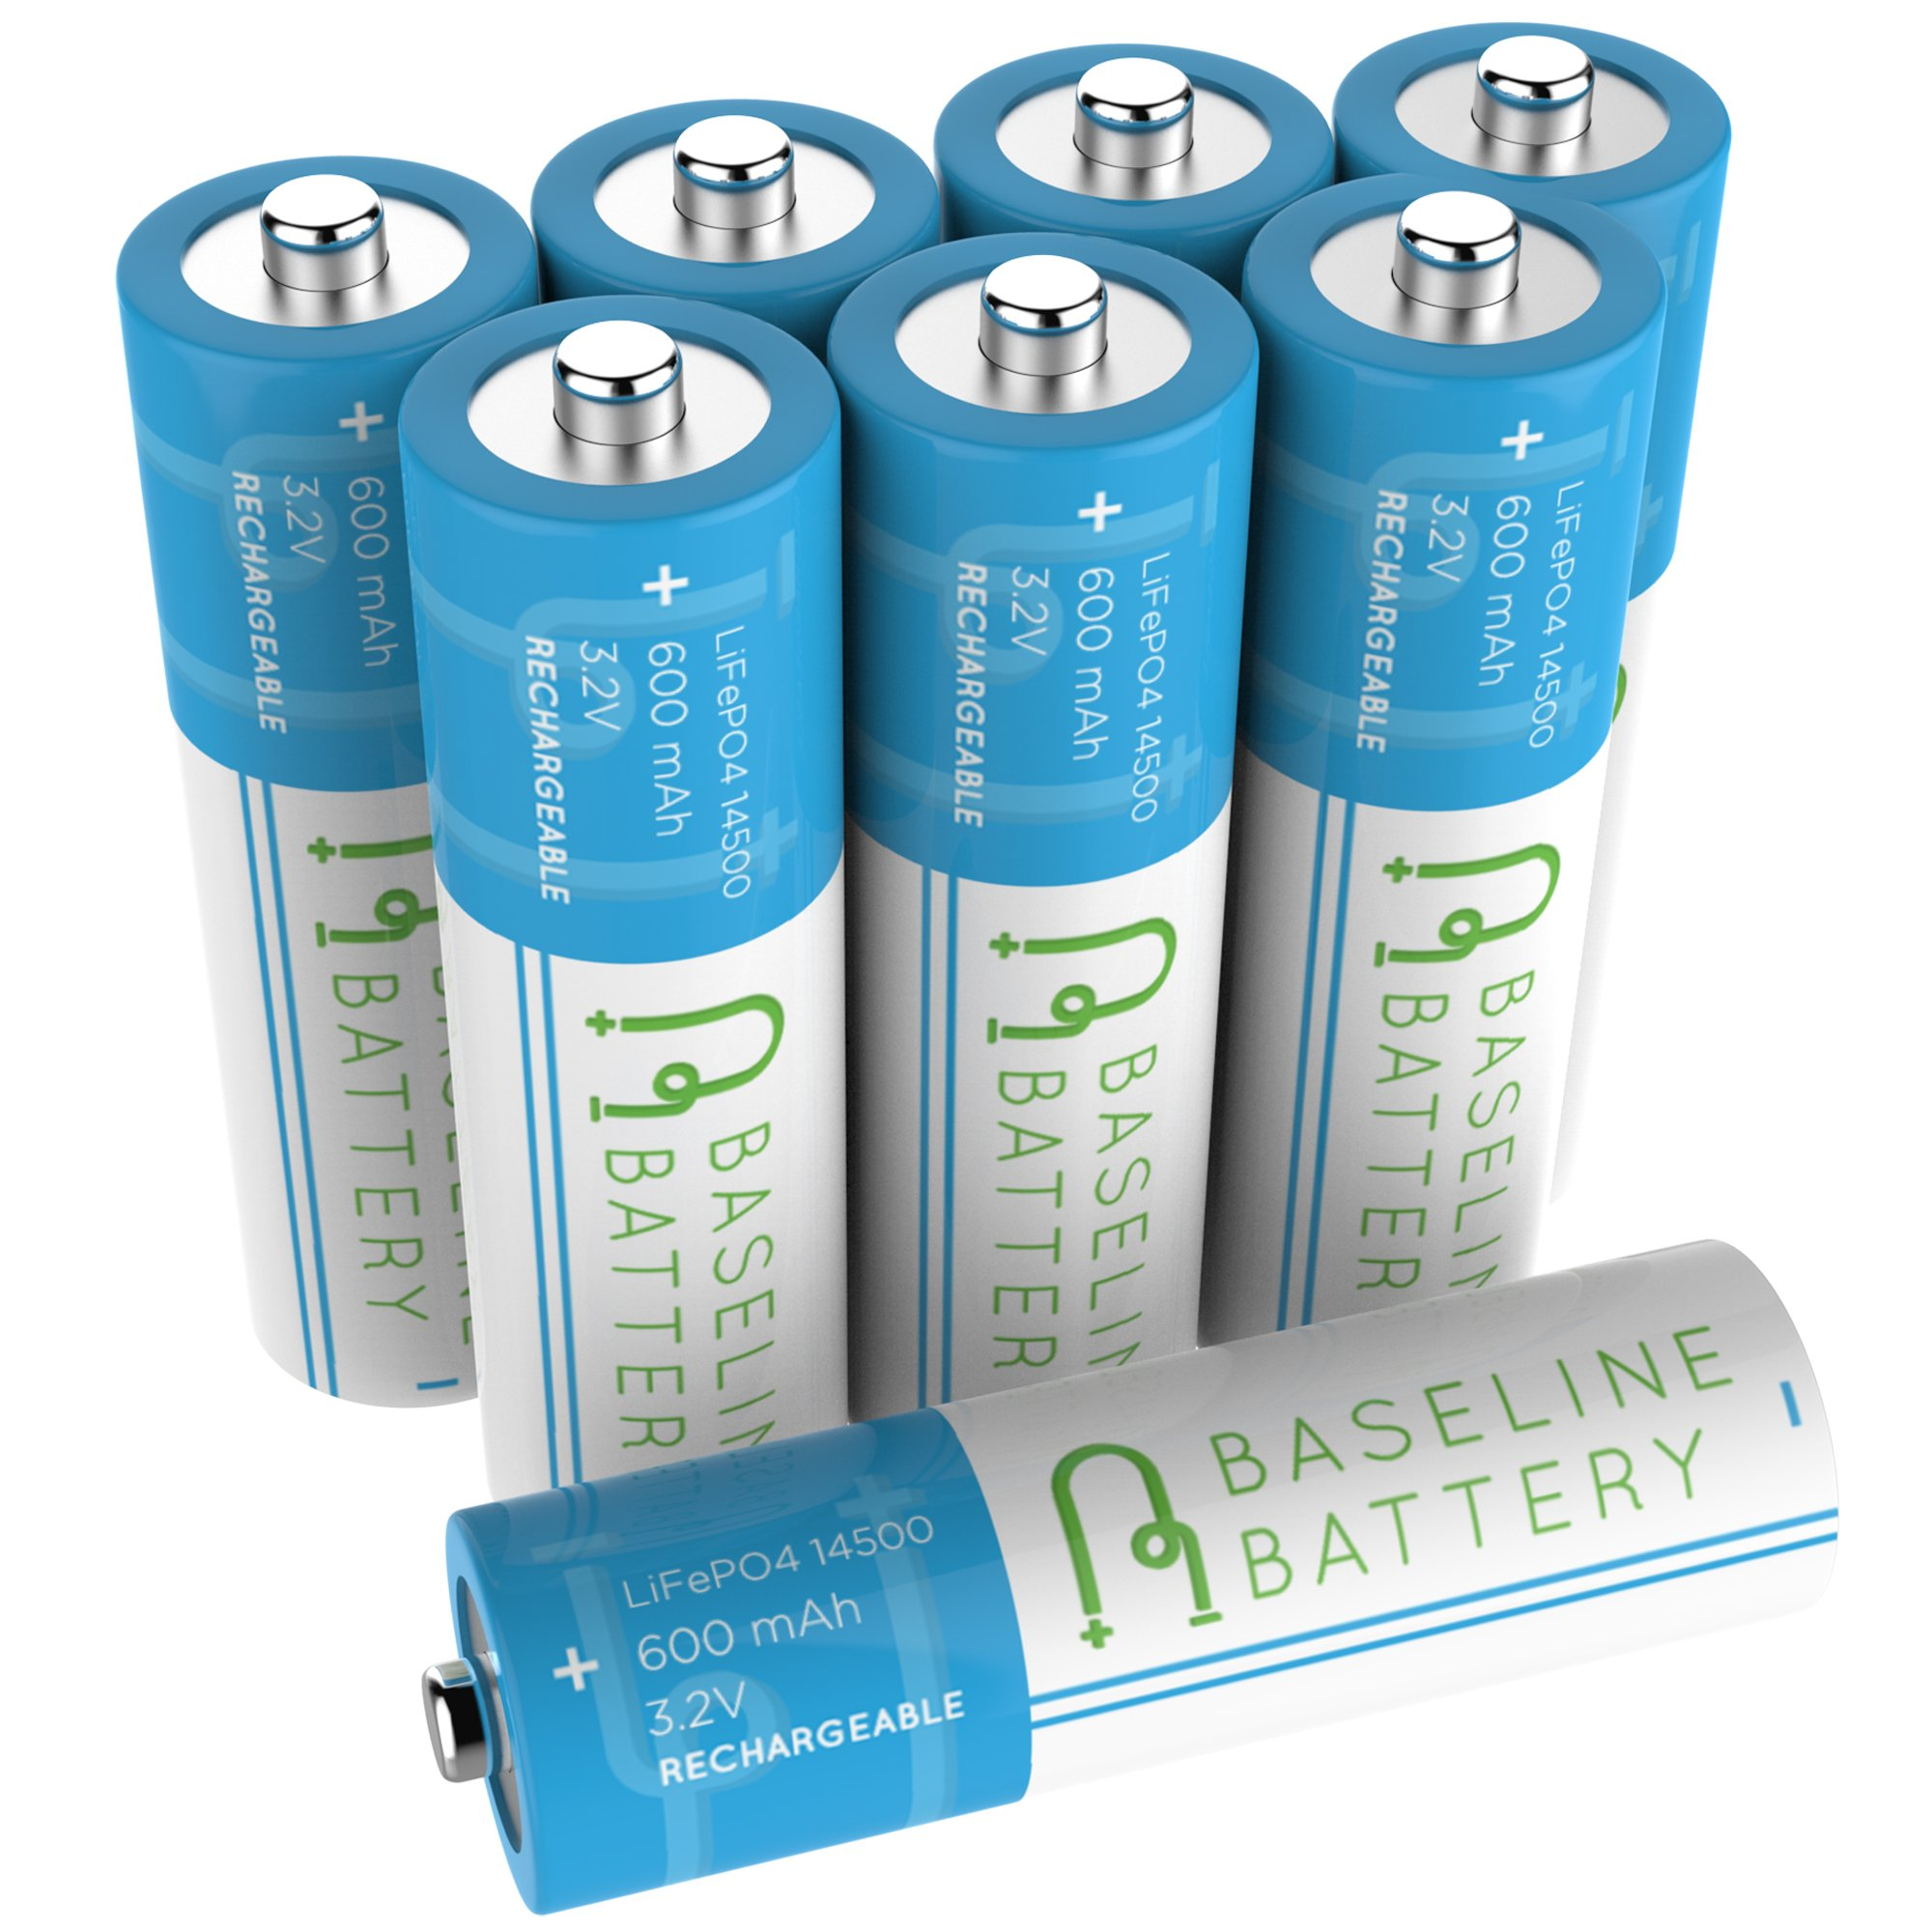 8 Baseline Battery 600mAh 14500 3.2v LiFePO4 Lithium Phosphate AA Size Rechargeable Batteries Solar Garden Light